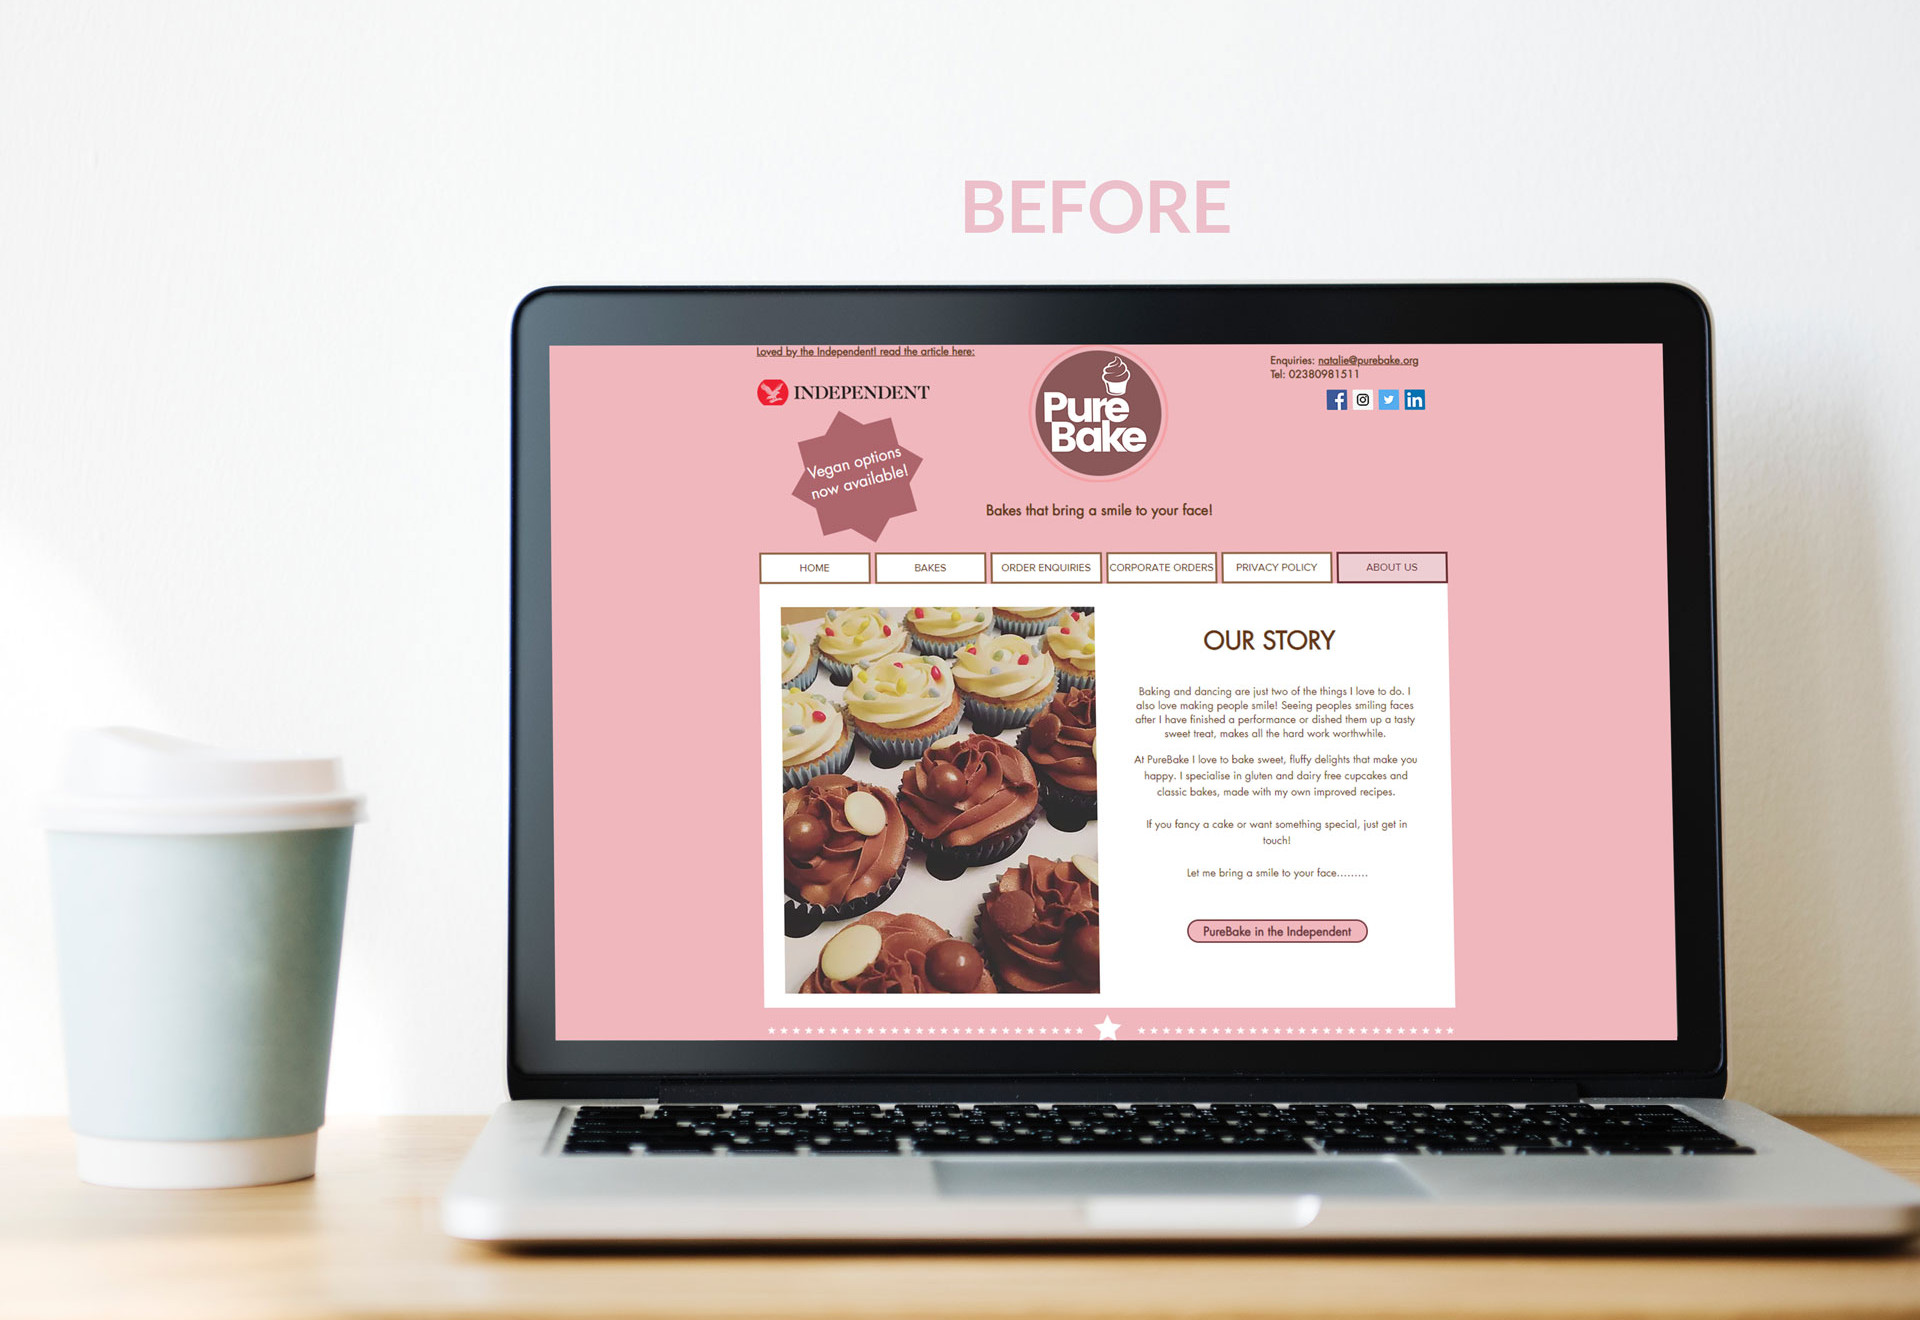 PureBake Story - Website Page Before